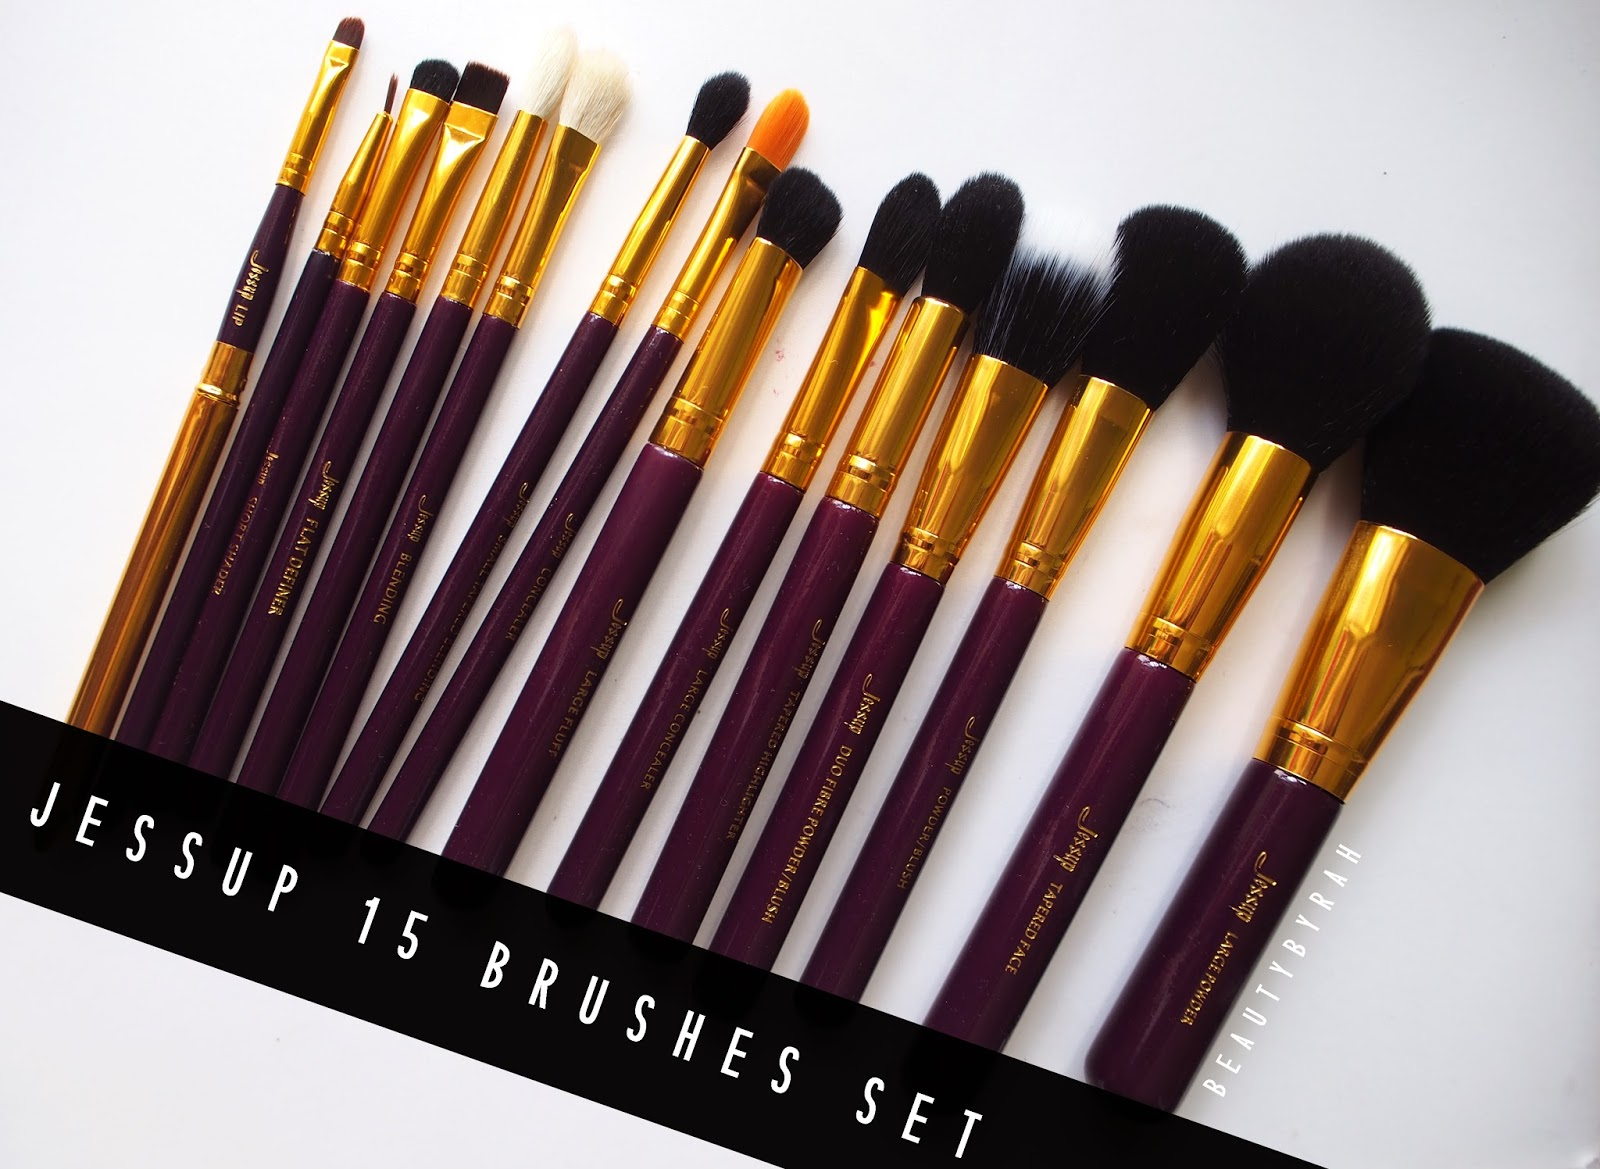 Jessup brushes review purple and gold 15 pieces brush set